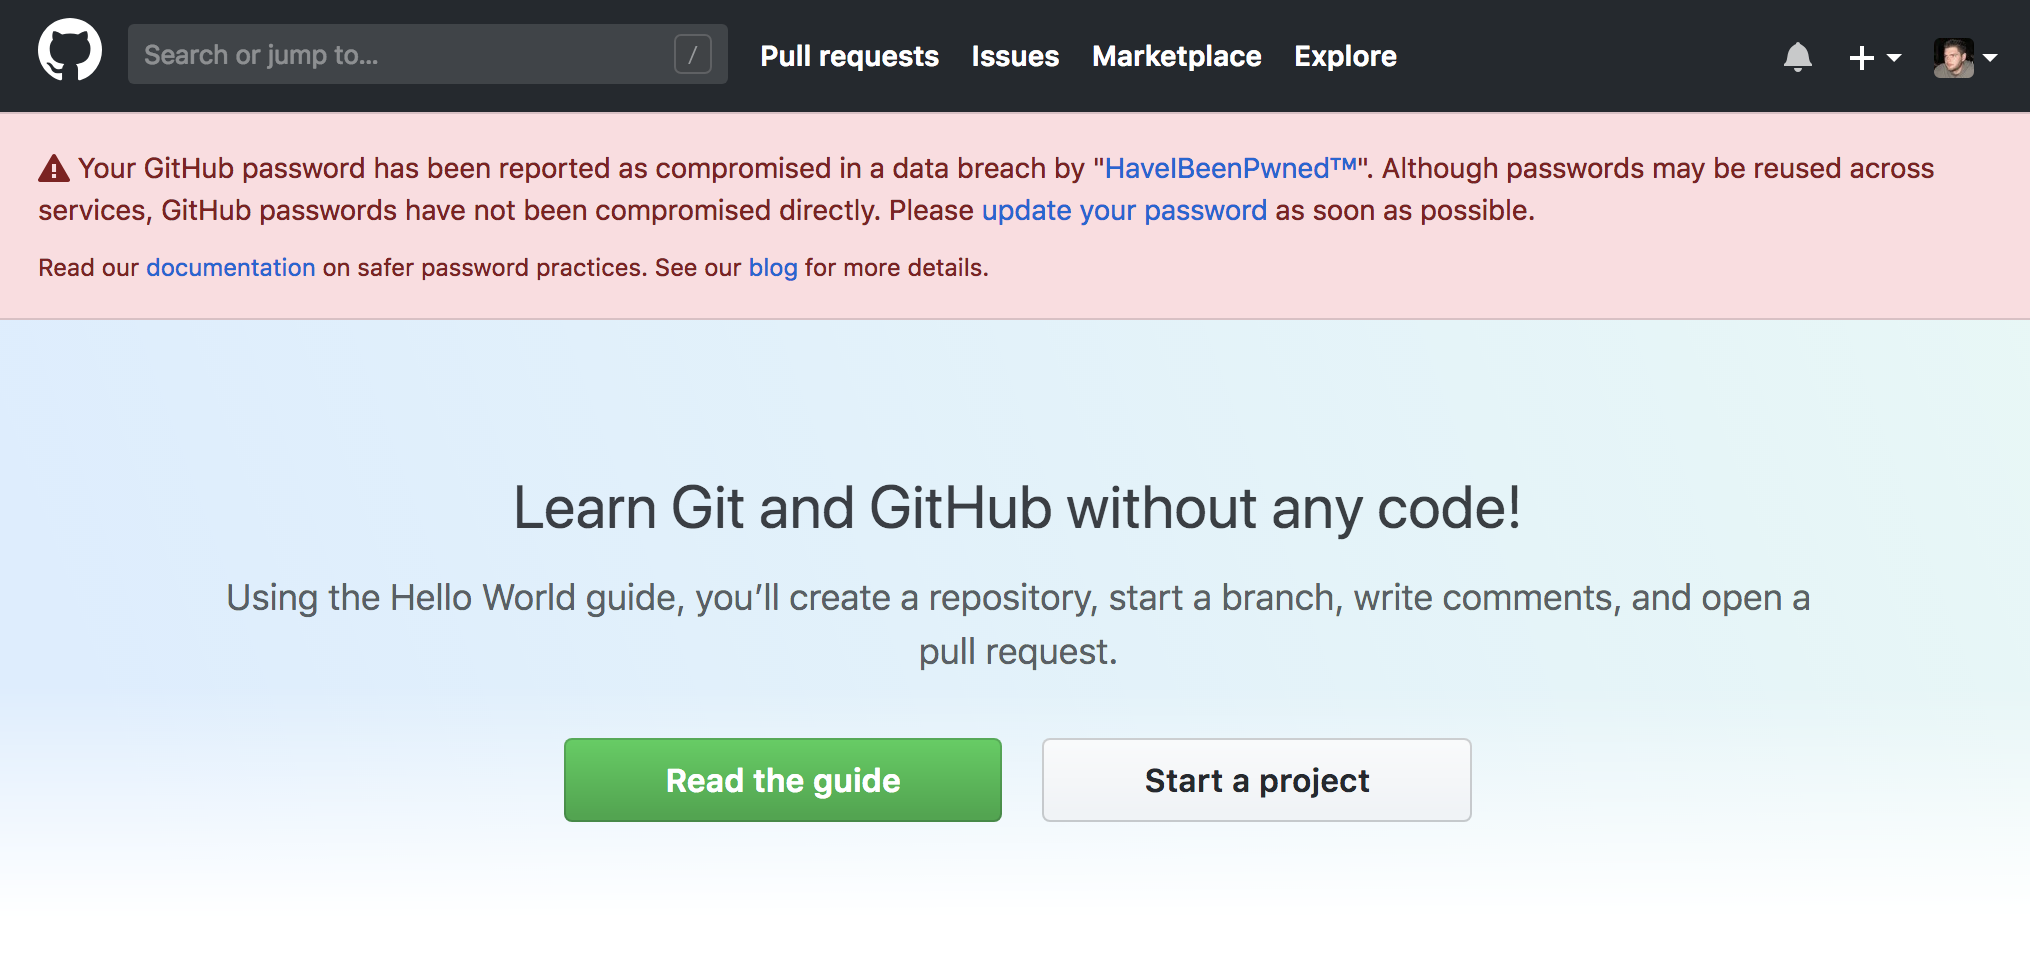 GitHub started warning users when adopting compromised credentials